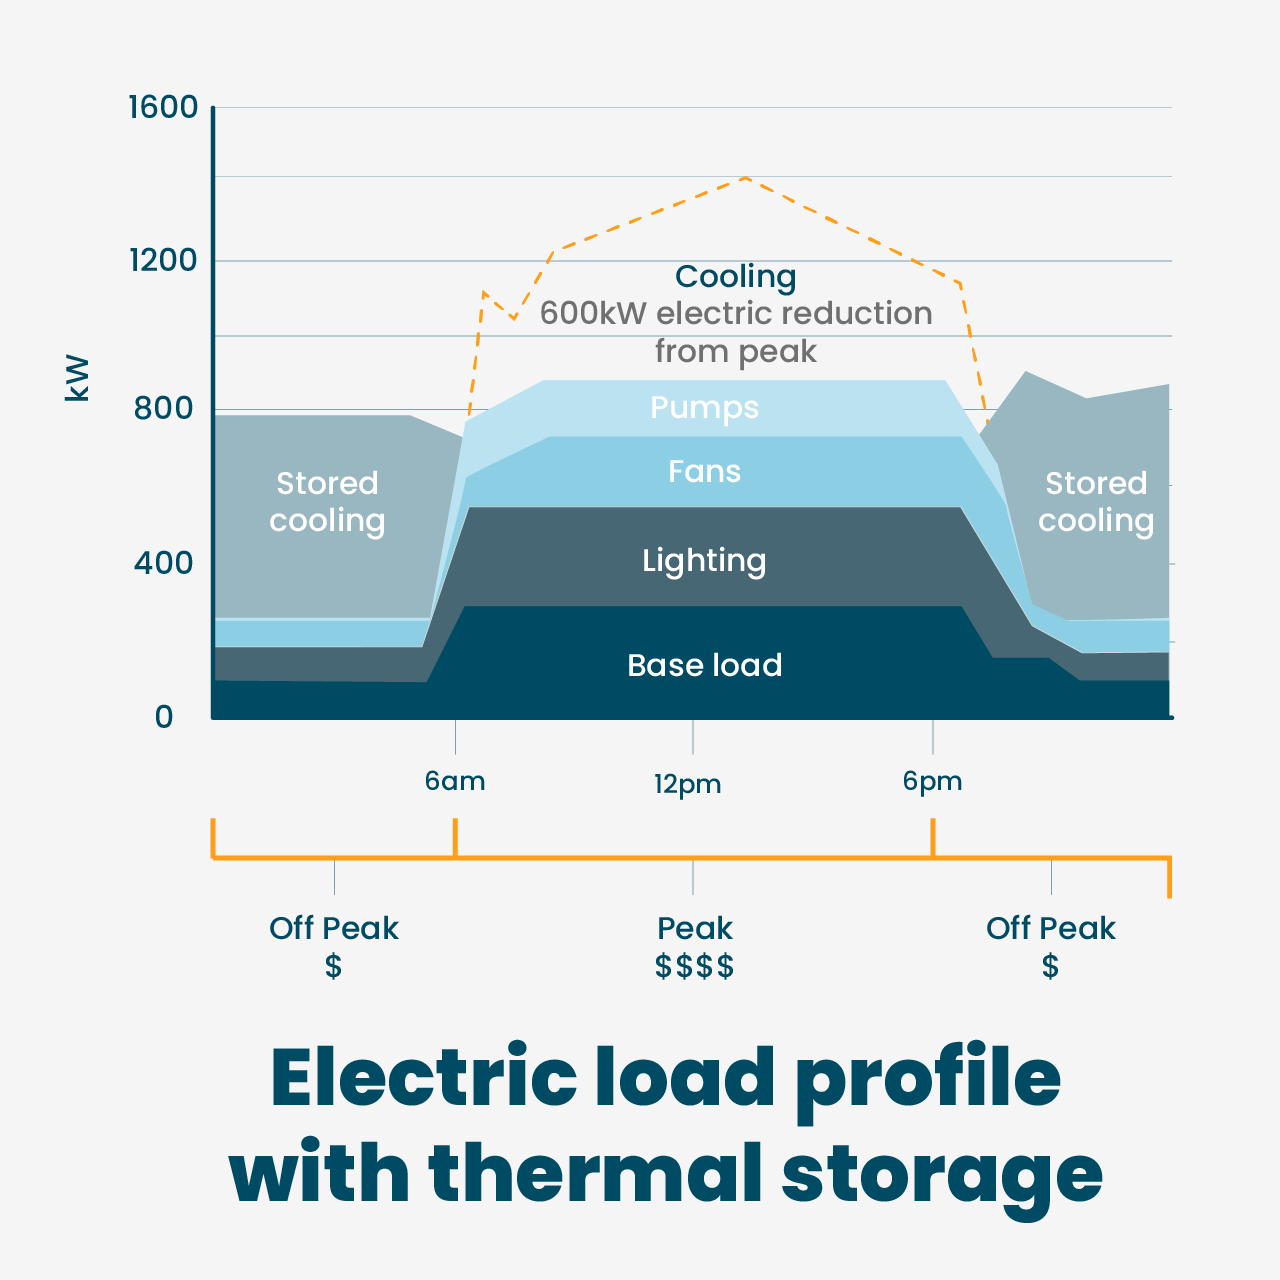 Electric load profile with thermal storage